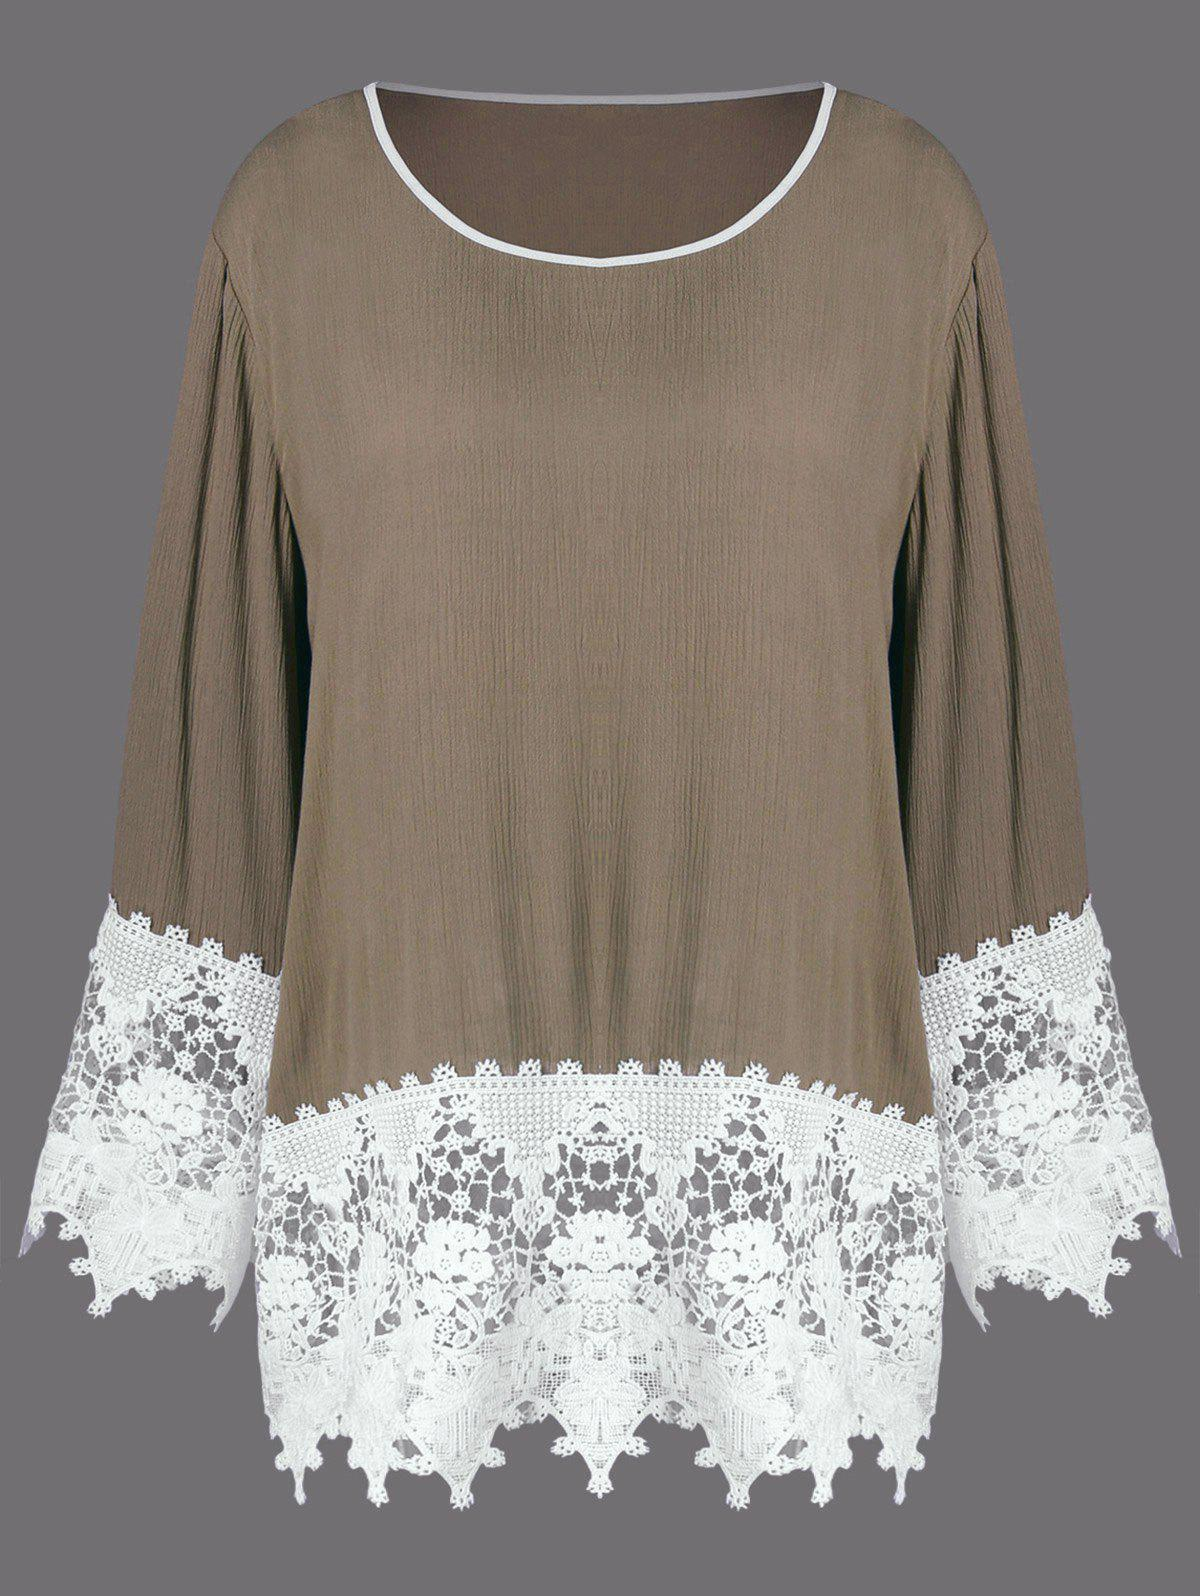 Plus Size Tunic Lace Insert T-Shirt - LIGHT BROWN XL